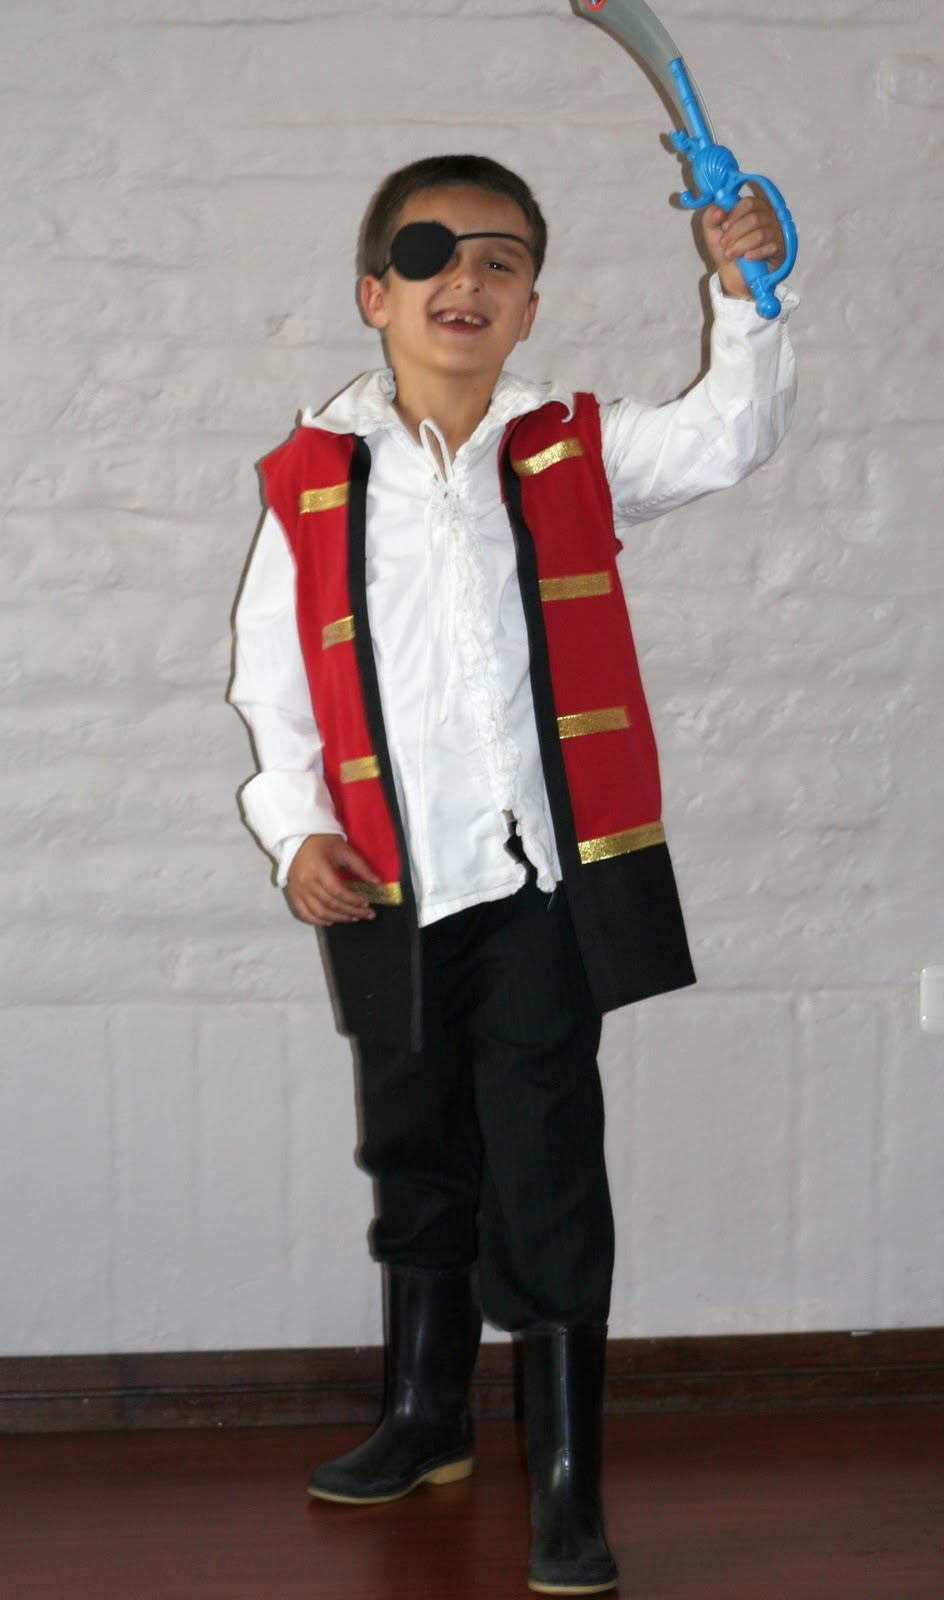 How to make a no sew captain hook costume from a t shirt you may find a few affiliate links below for your shopping convenience and i get a tiny portion of the proceeds which helps keep us up and solutioingenieria Gallery